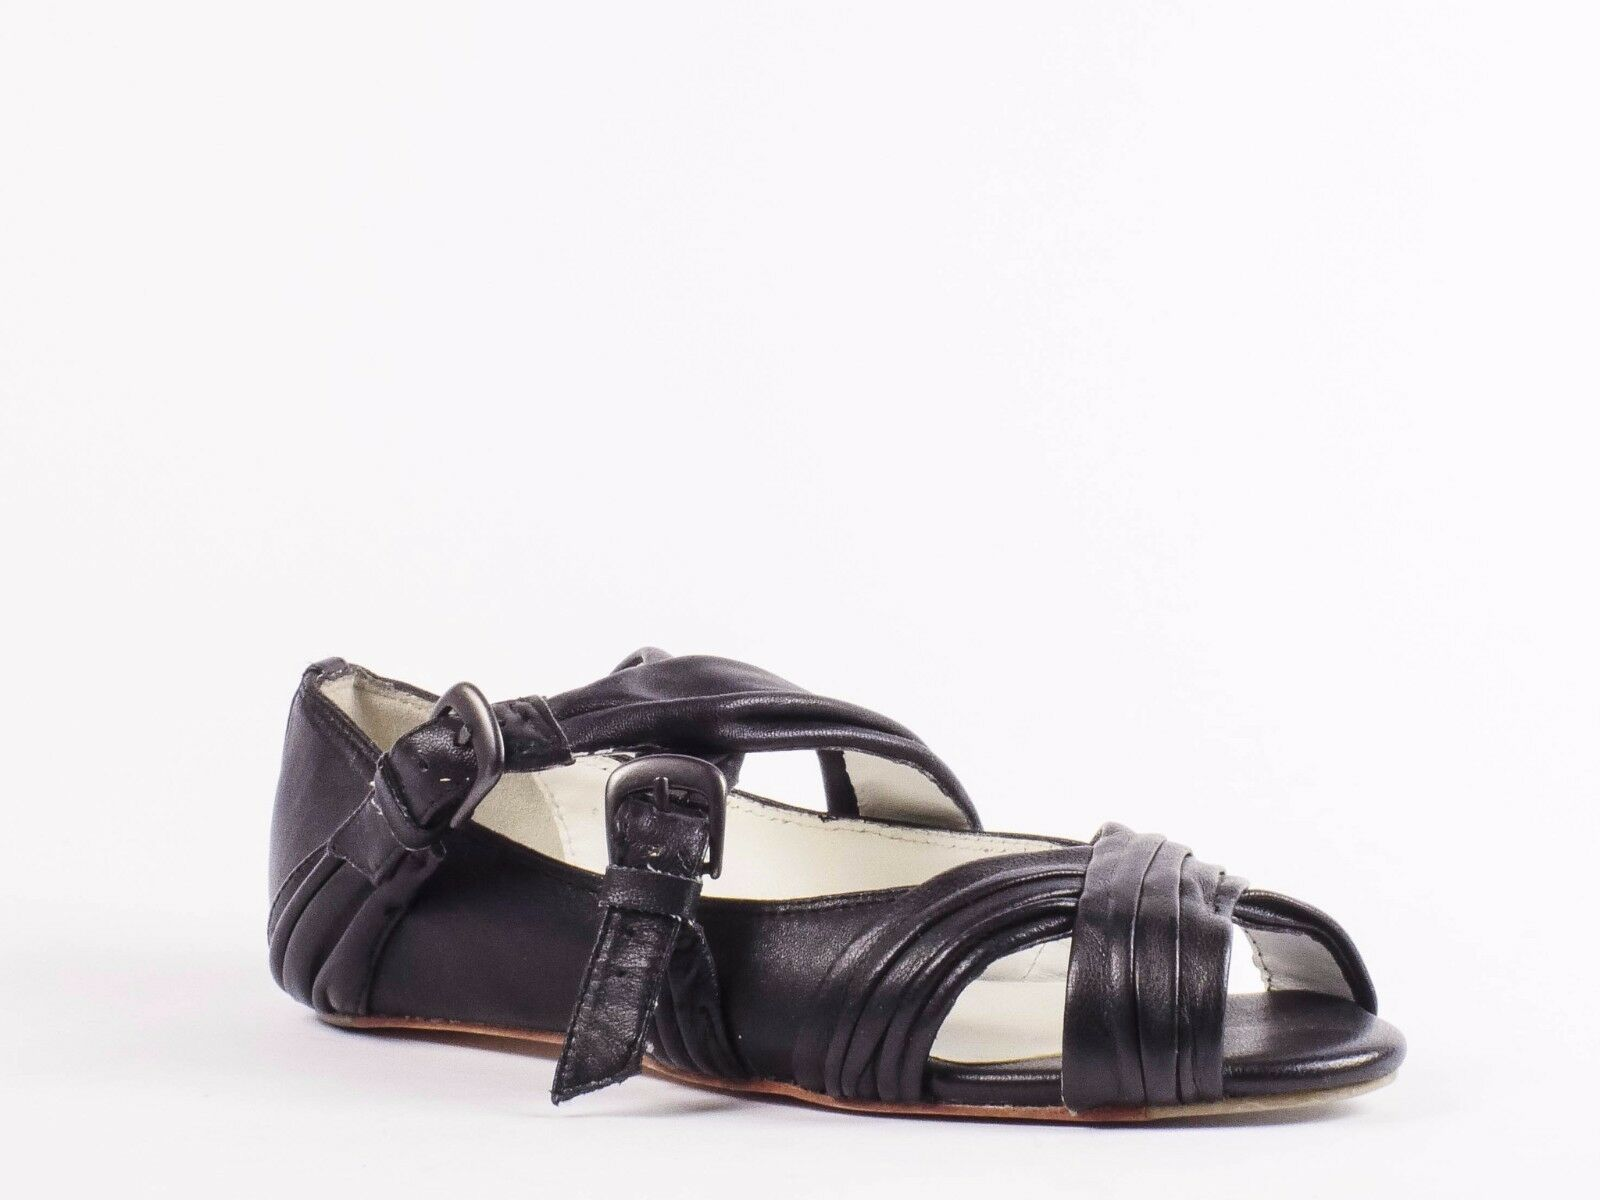 Joe's Jeans Swirl Ruched Strap Flat Black US Sz 6 M Leather Women's Sandal